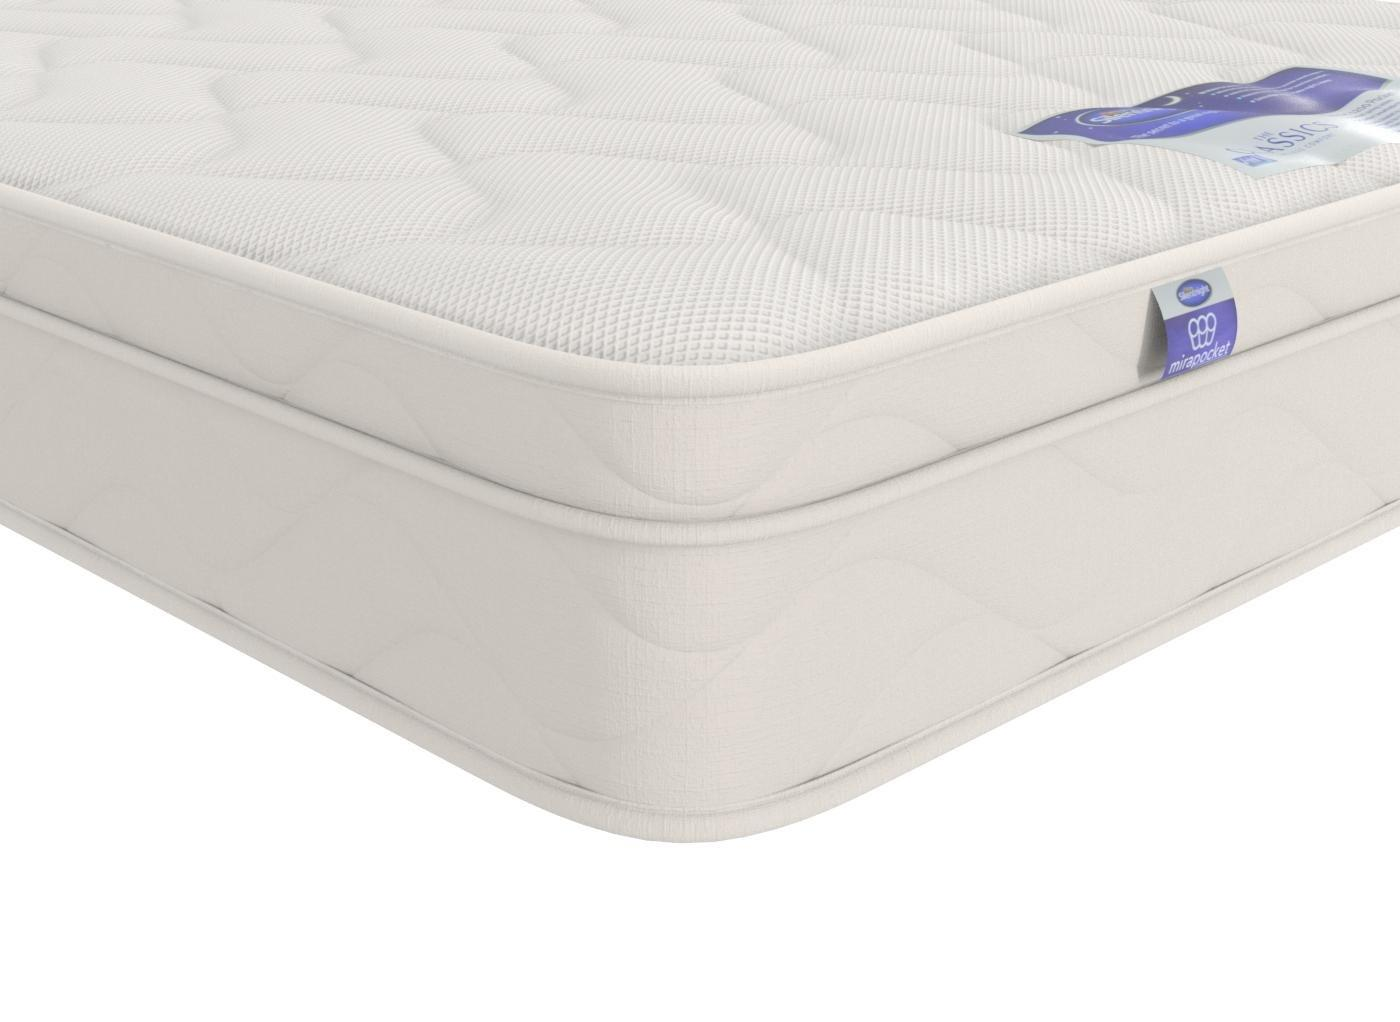 Silentnight Westland Miracoil Mattress - Medium Firm